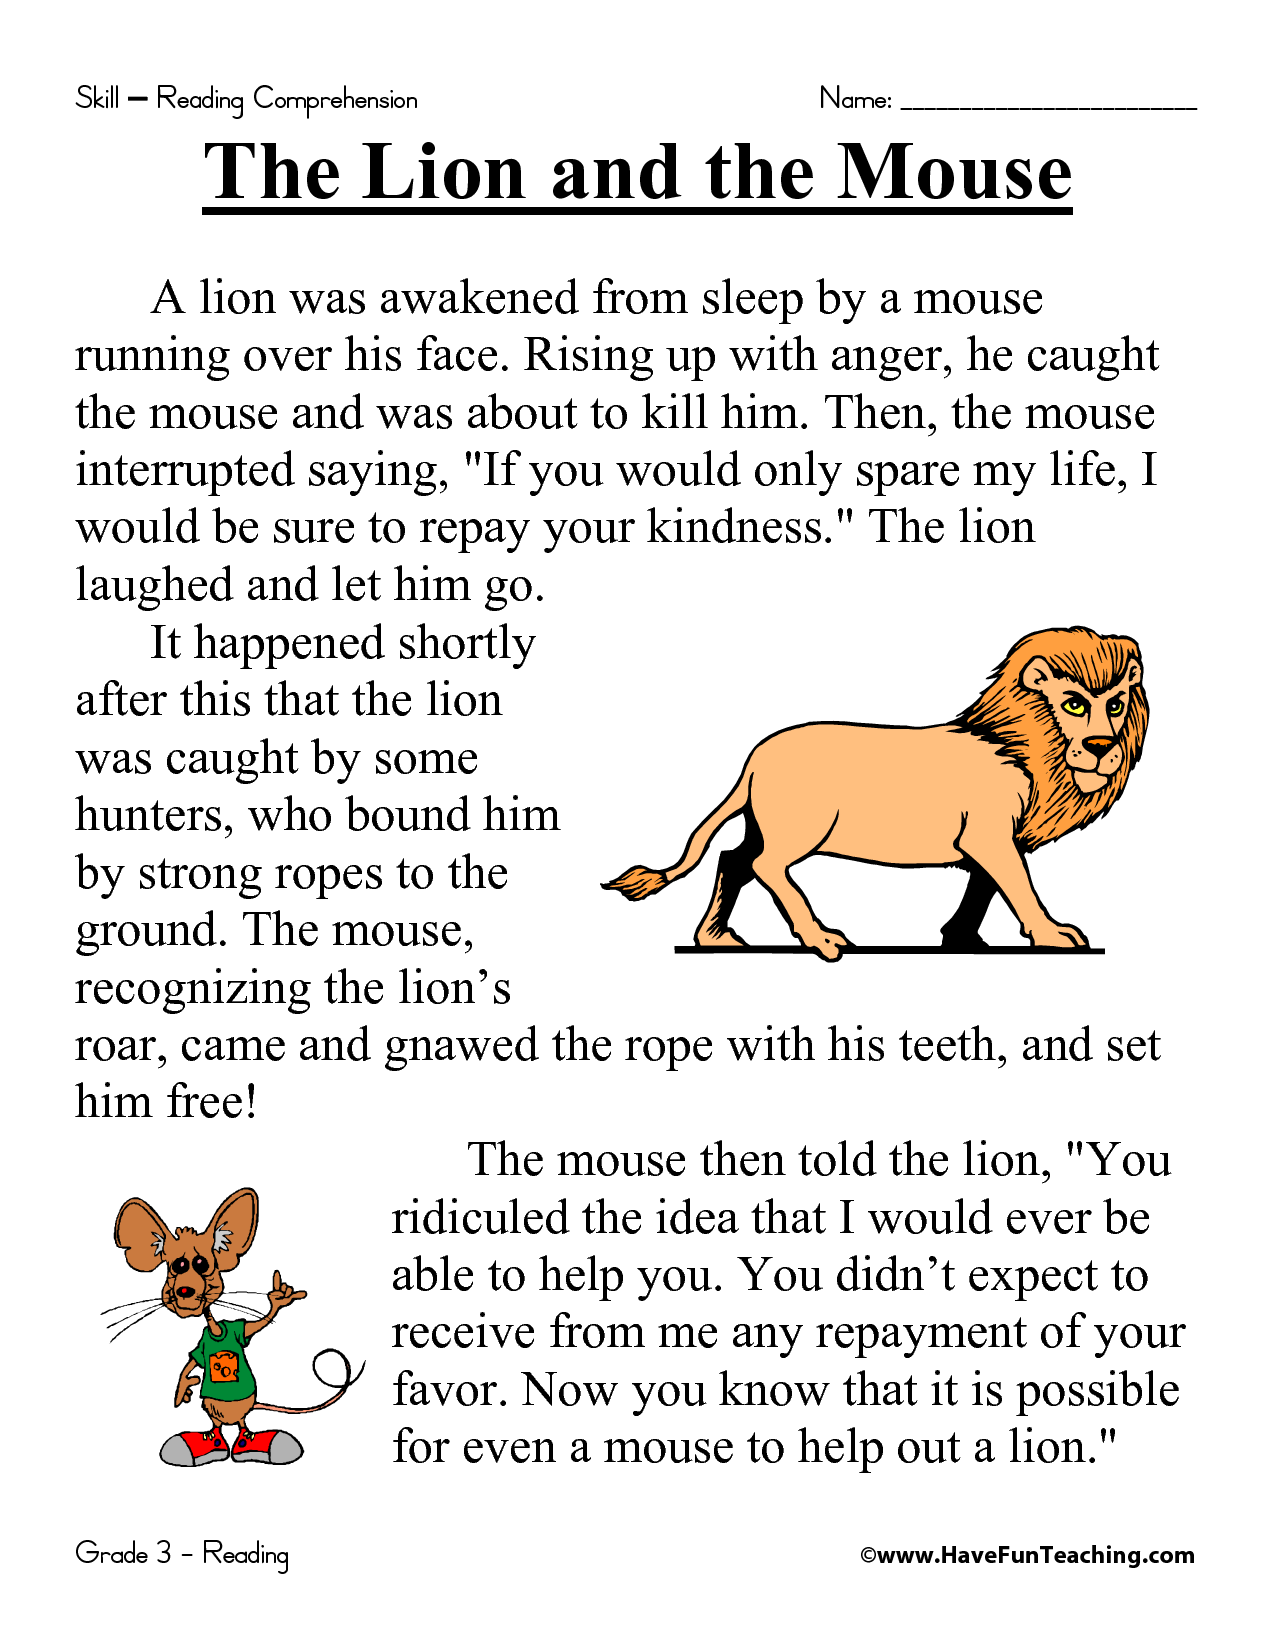 Worksheet Fourth Grade Reading Comprehension Worksheet first grade reading comprehension worksheets the lion and mouse worksheet